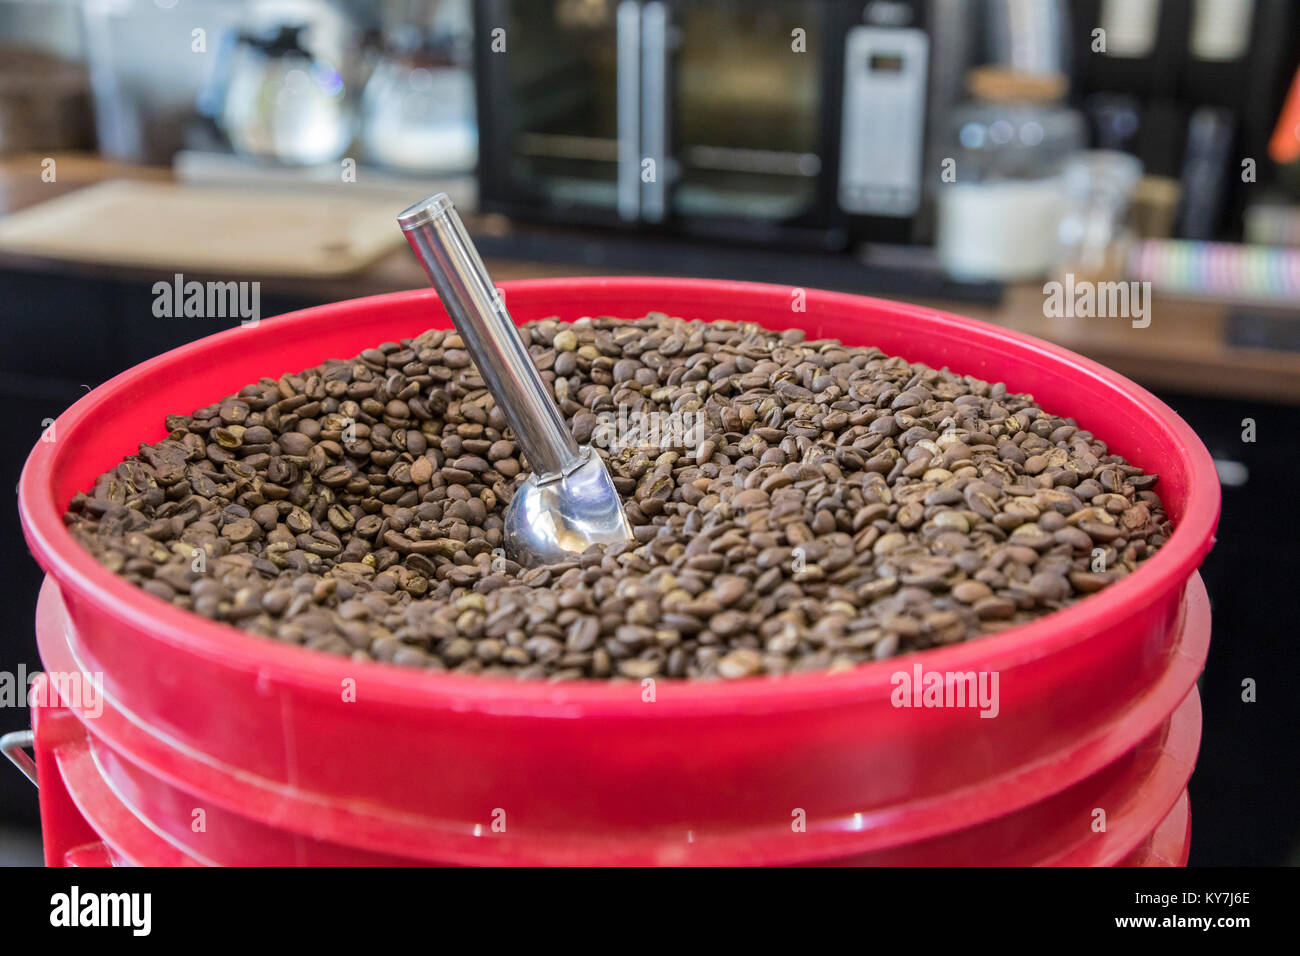 Dearborn, Michigan - A bucket of coffee beans at a coffee shop called Qahwah House, which imports and serves coffee - Stock Image